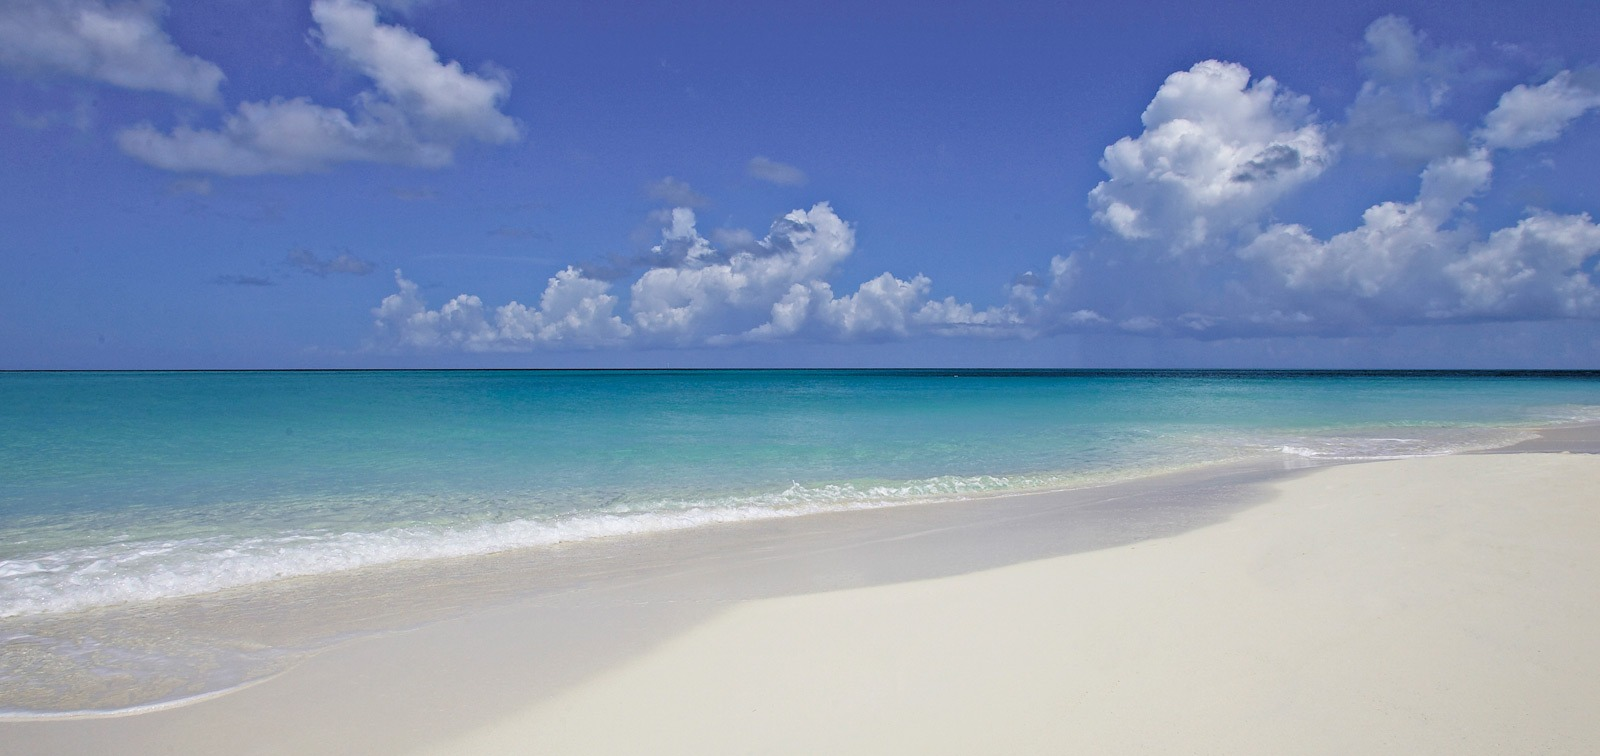 Turks Amp Caicos Our 2015 Summer Family Vacation Spot Celeb Baby Laundry